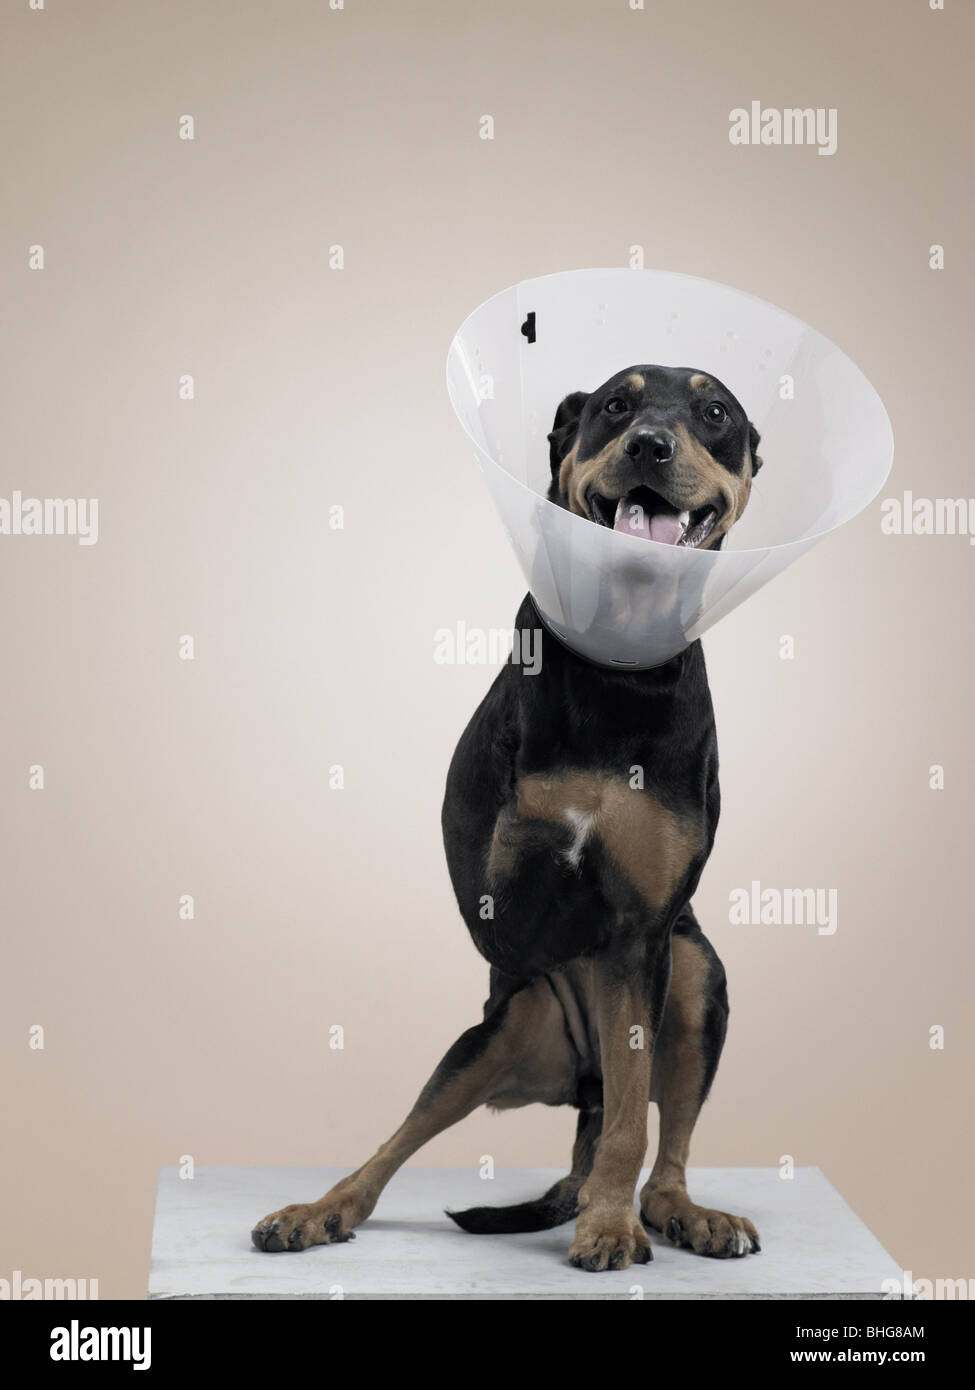 Dog in protective collar with a missing leg - Stock Image